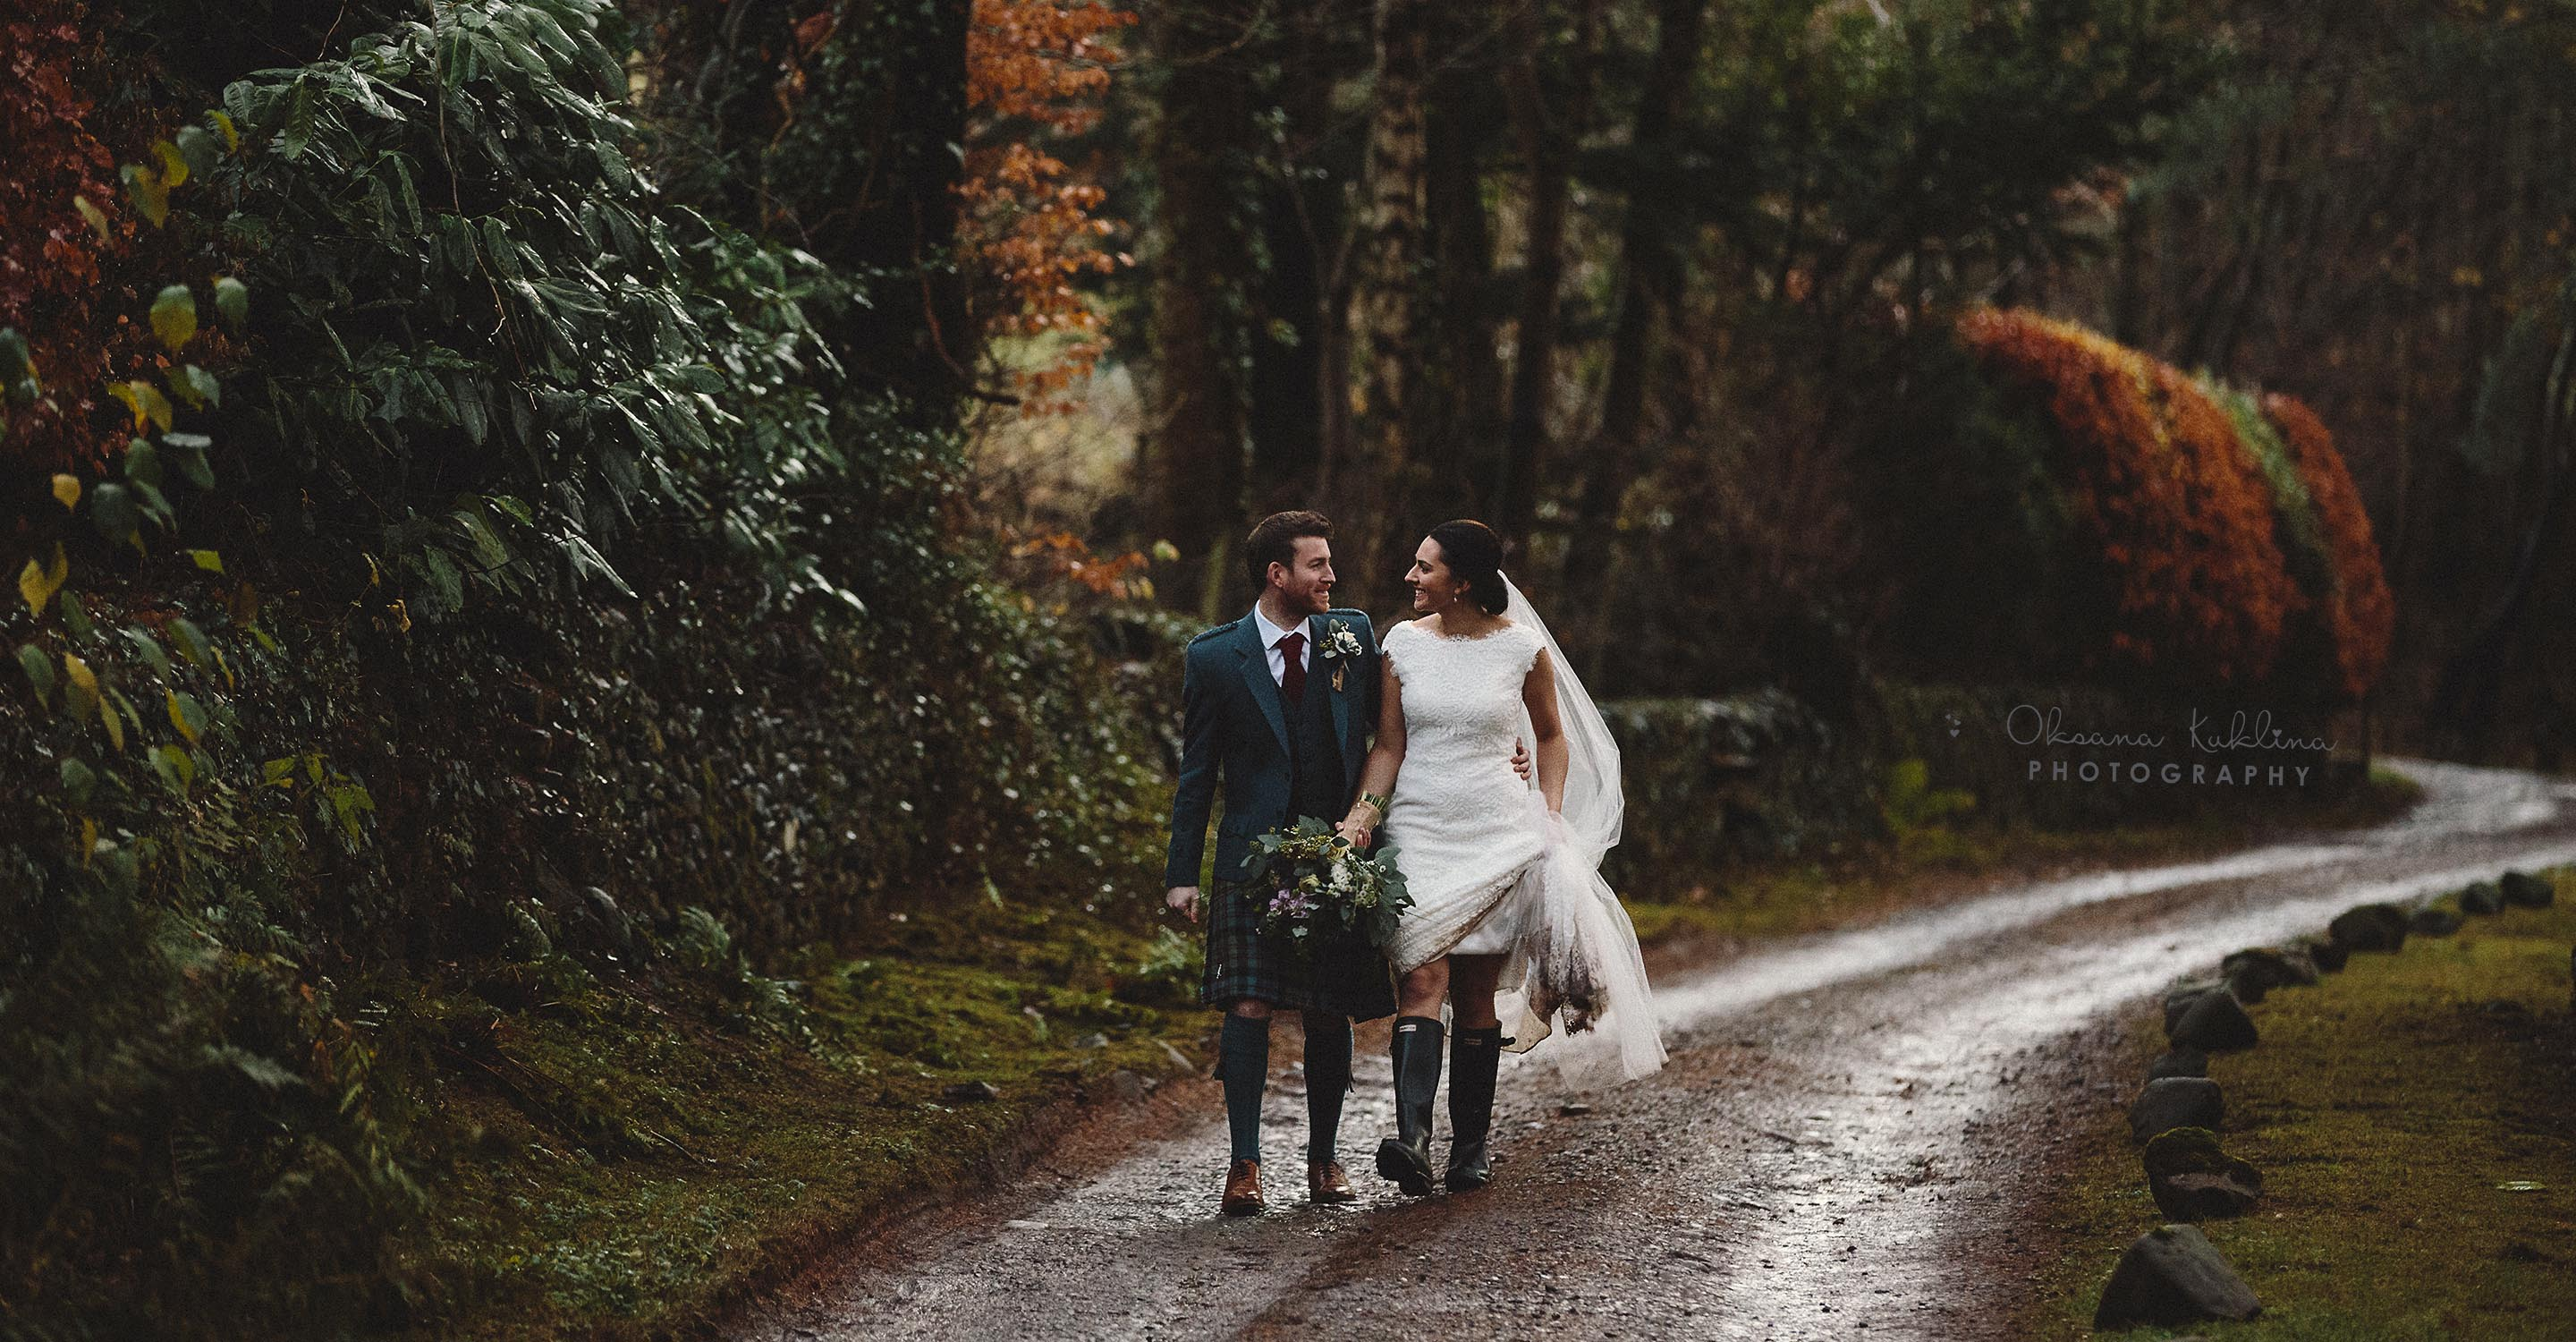 Scottish Borders wedding photographer - Aikwood Tower wedding in Scotland